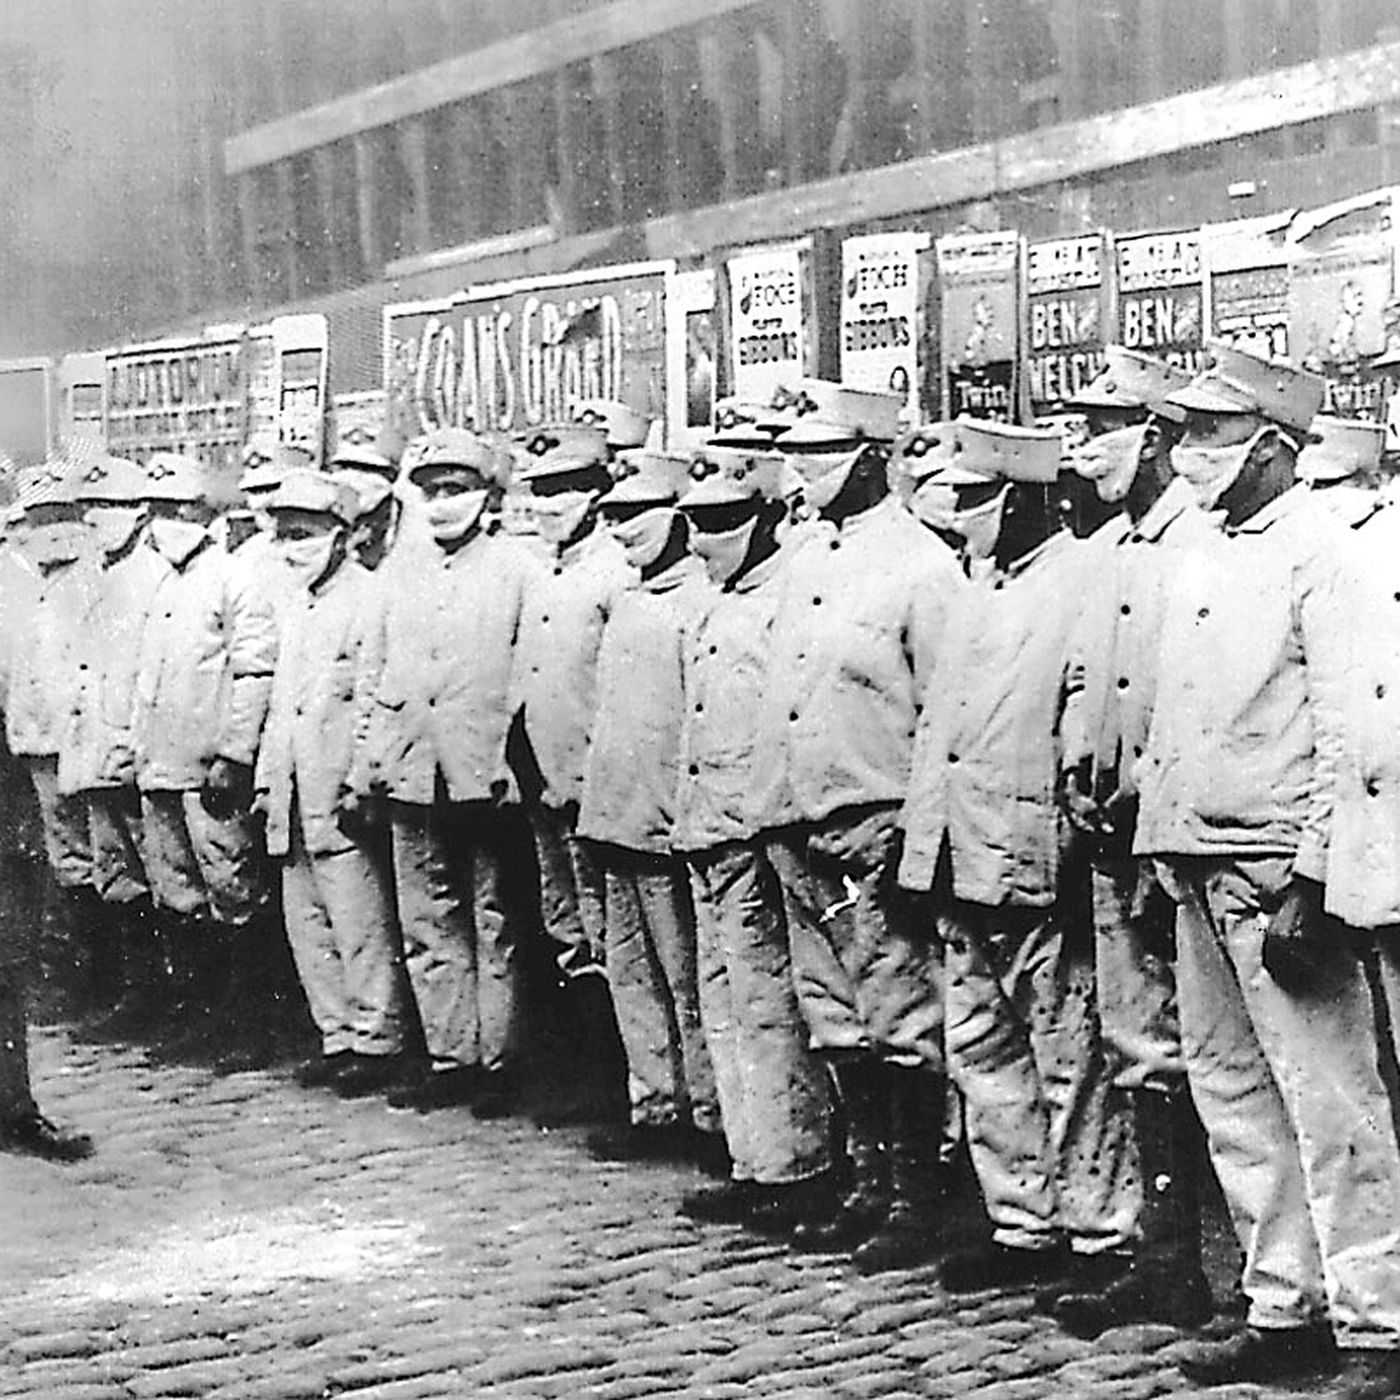 Spanish Influenza 1918 1919 Pandemic Impact On Chicago A Look Back In Light Of Coronavirus Chicago Sun Times